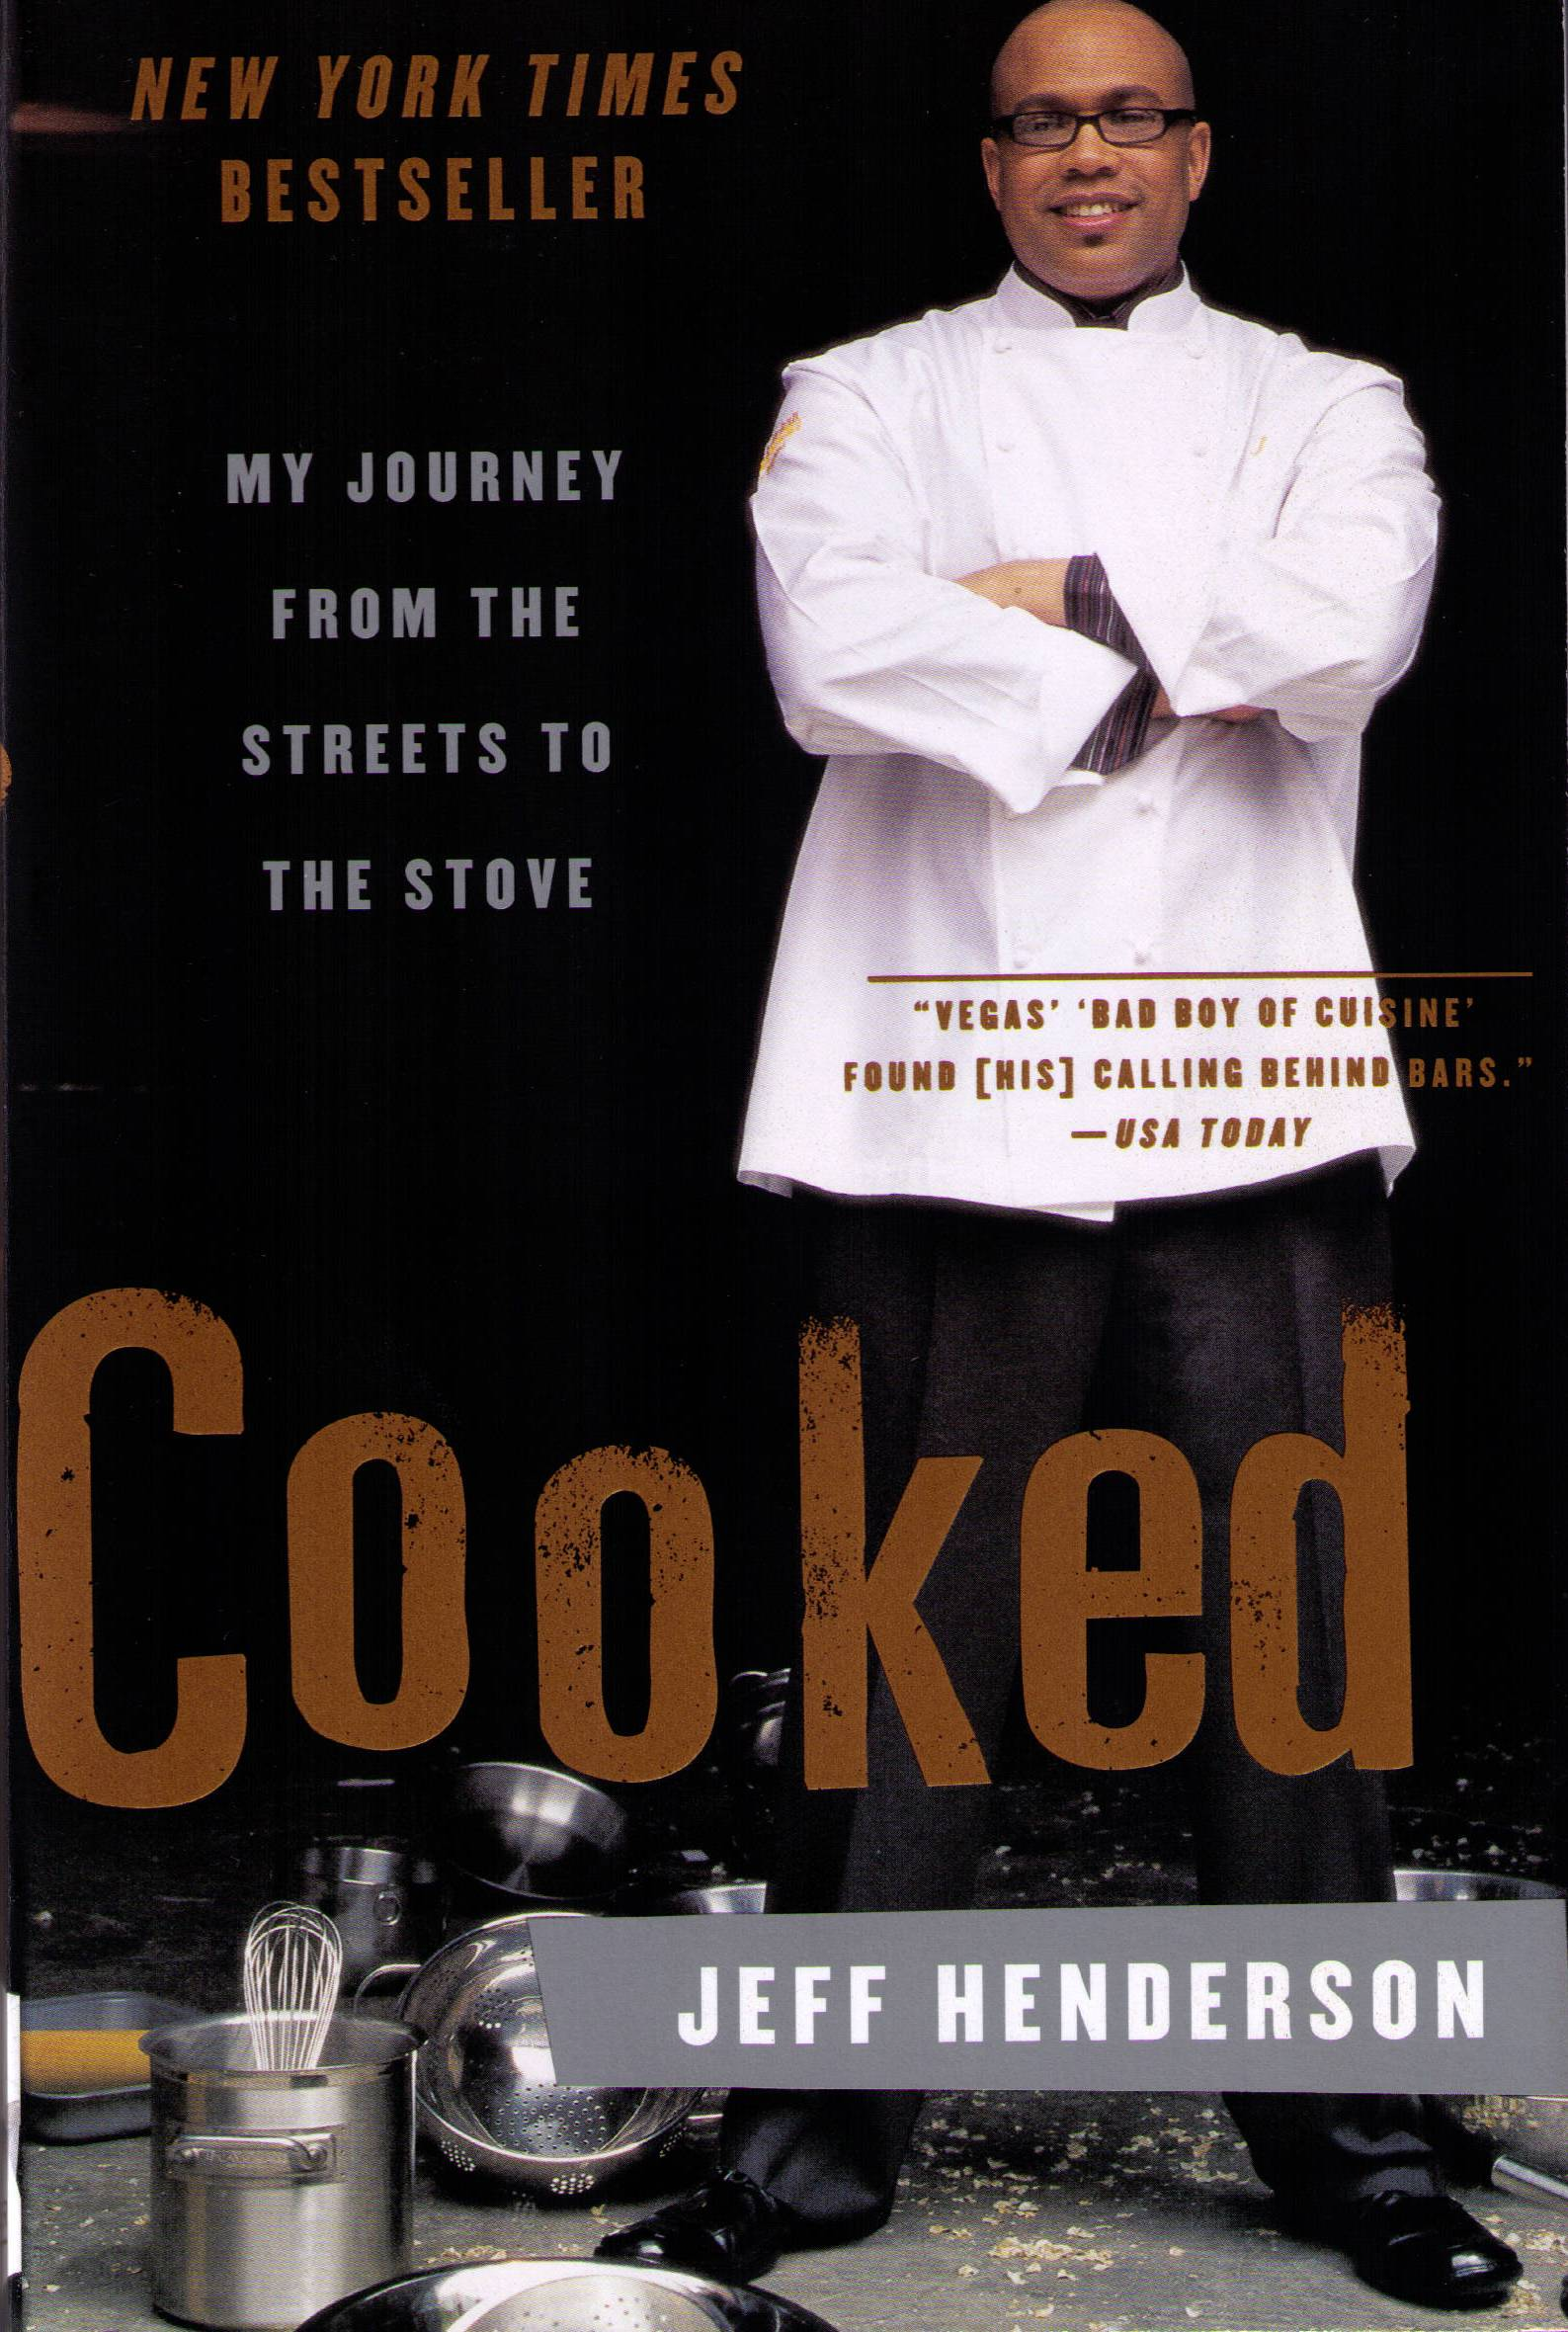 Cooked: My Journey from the Streets to the Stove Book Cover Image